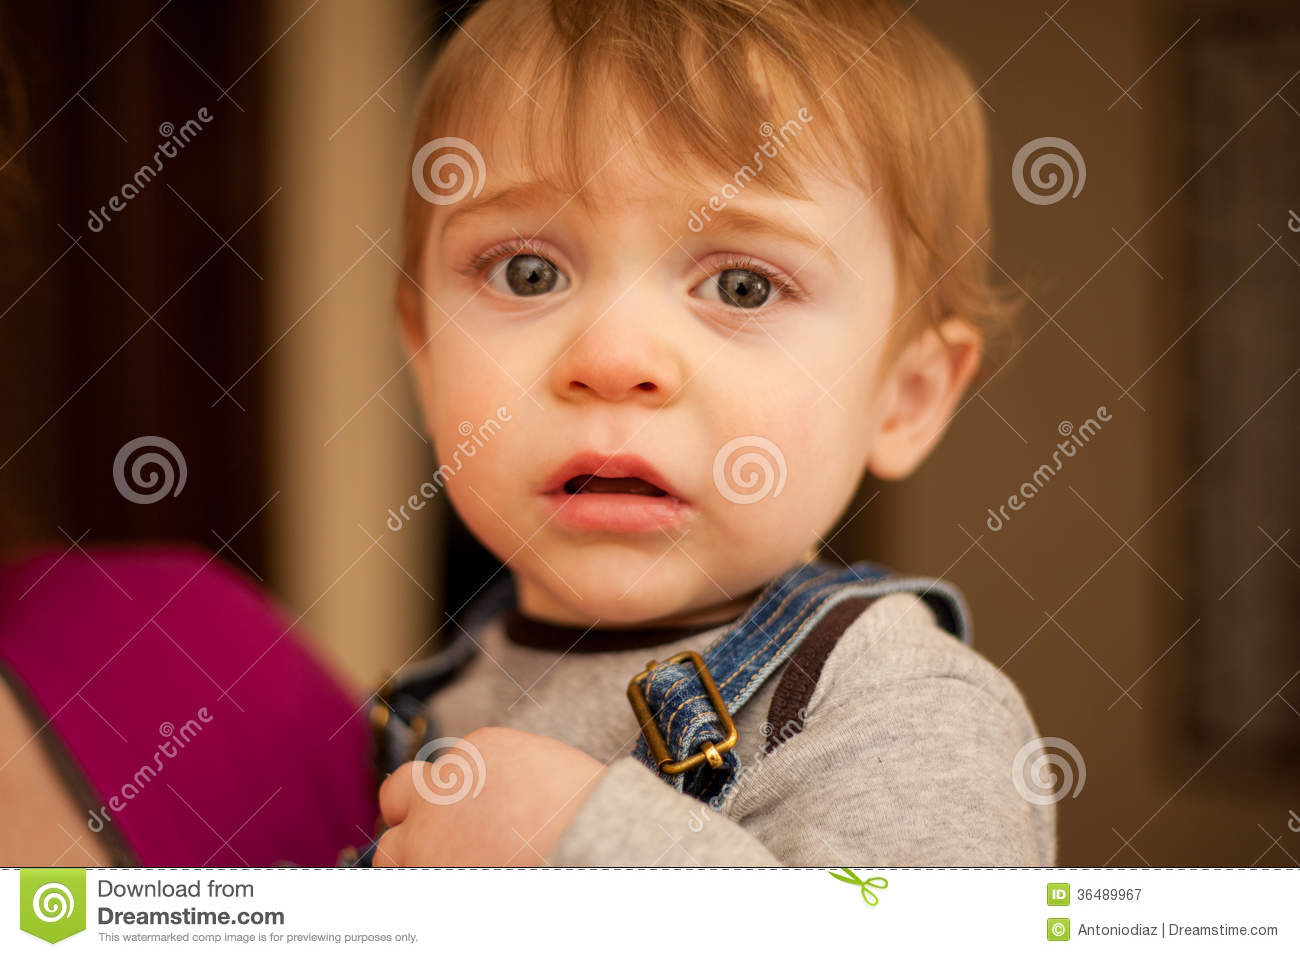 little boy crying essay Shop for little boy crying on etsy, the place to express your creativity through the buying and selling of handmade and vintage goods.